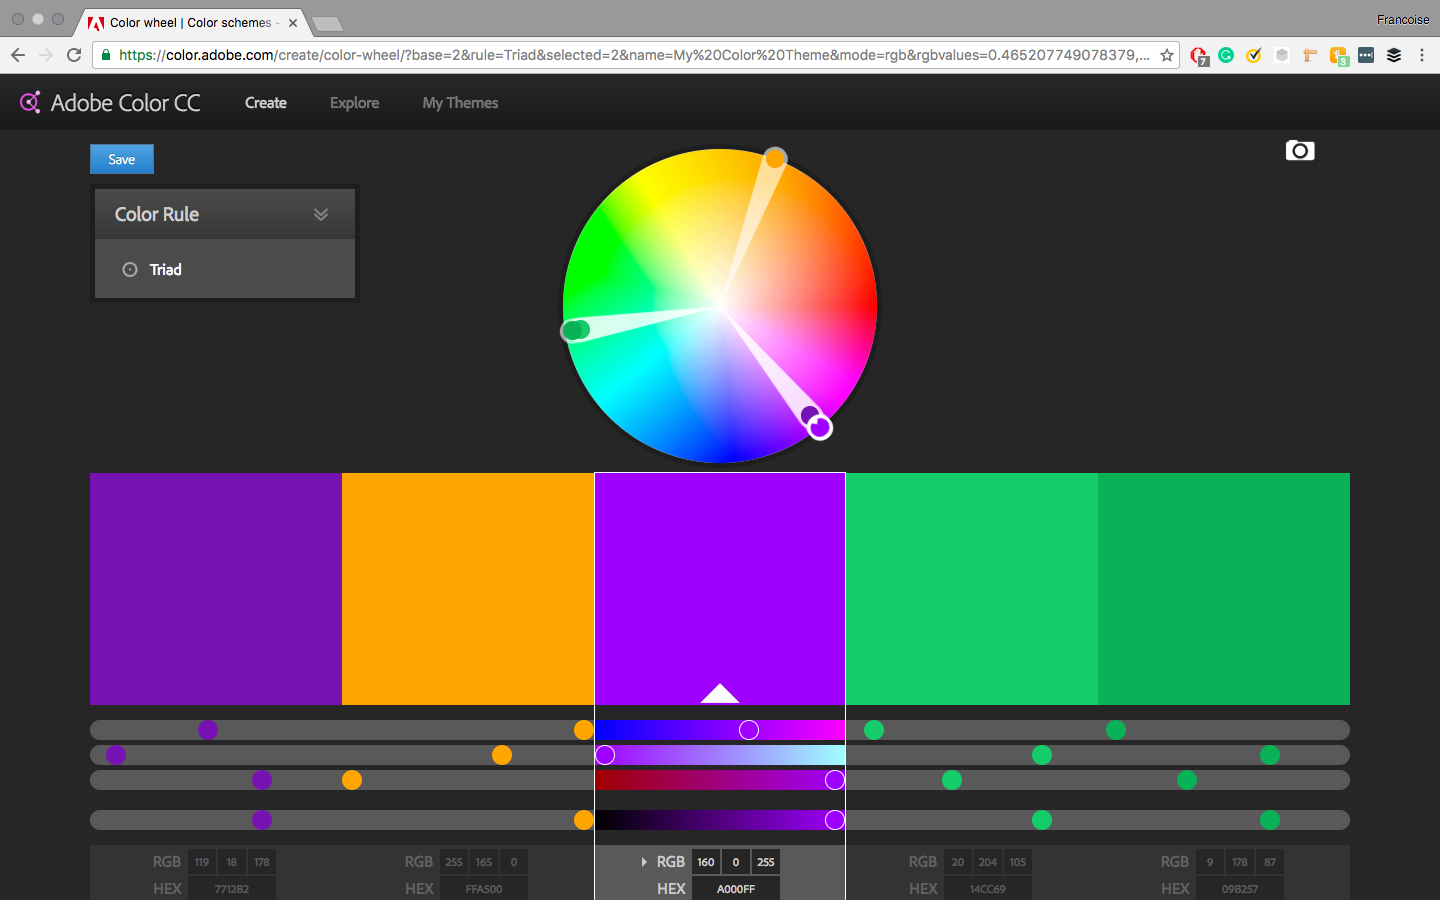 The Great Adobe Color Wheel!